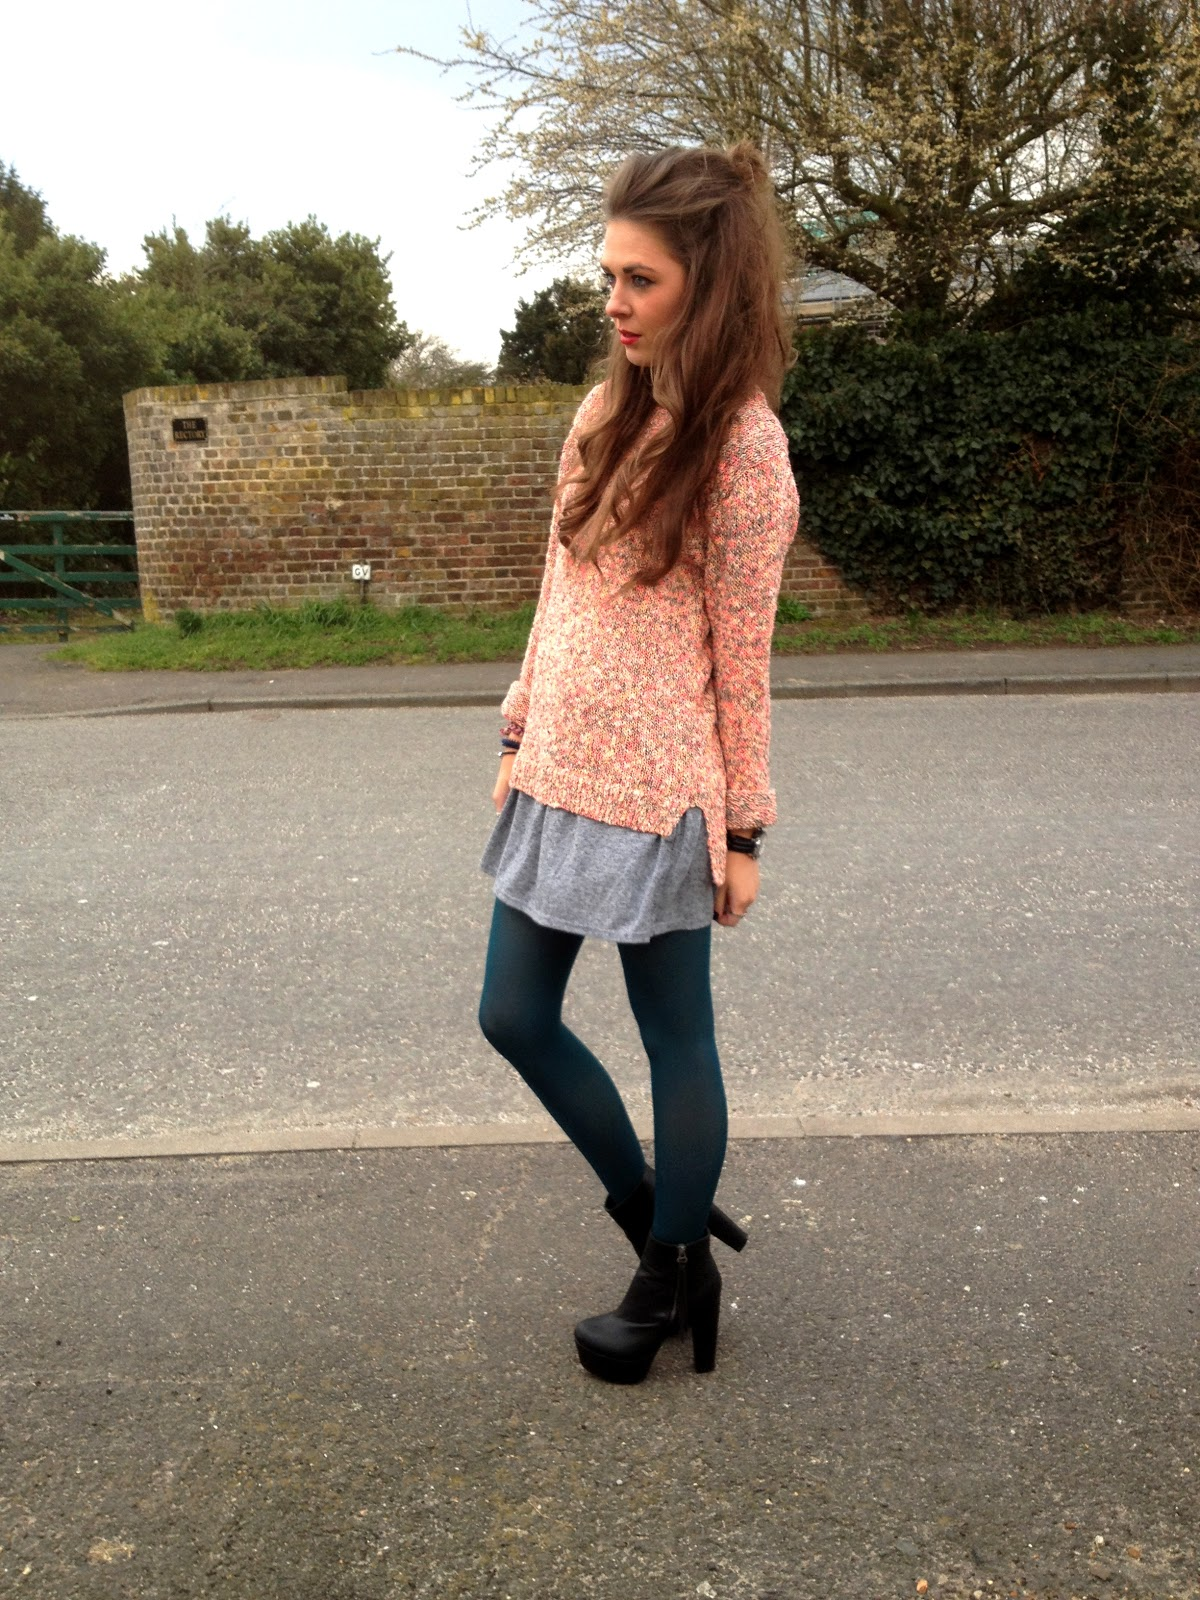 Fashion blogger wearing NEXT jumper and topshop dress with green tights